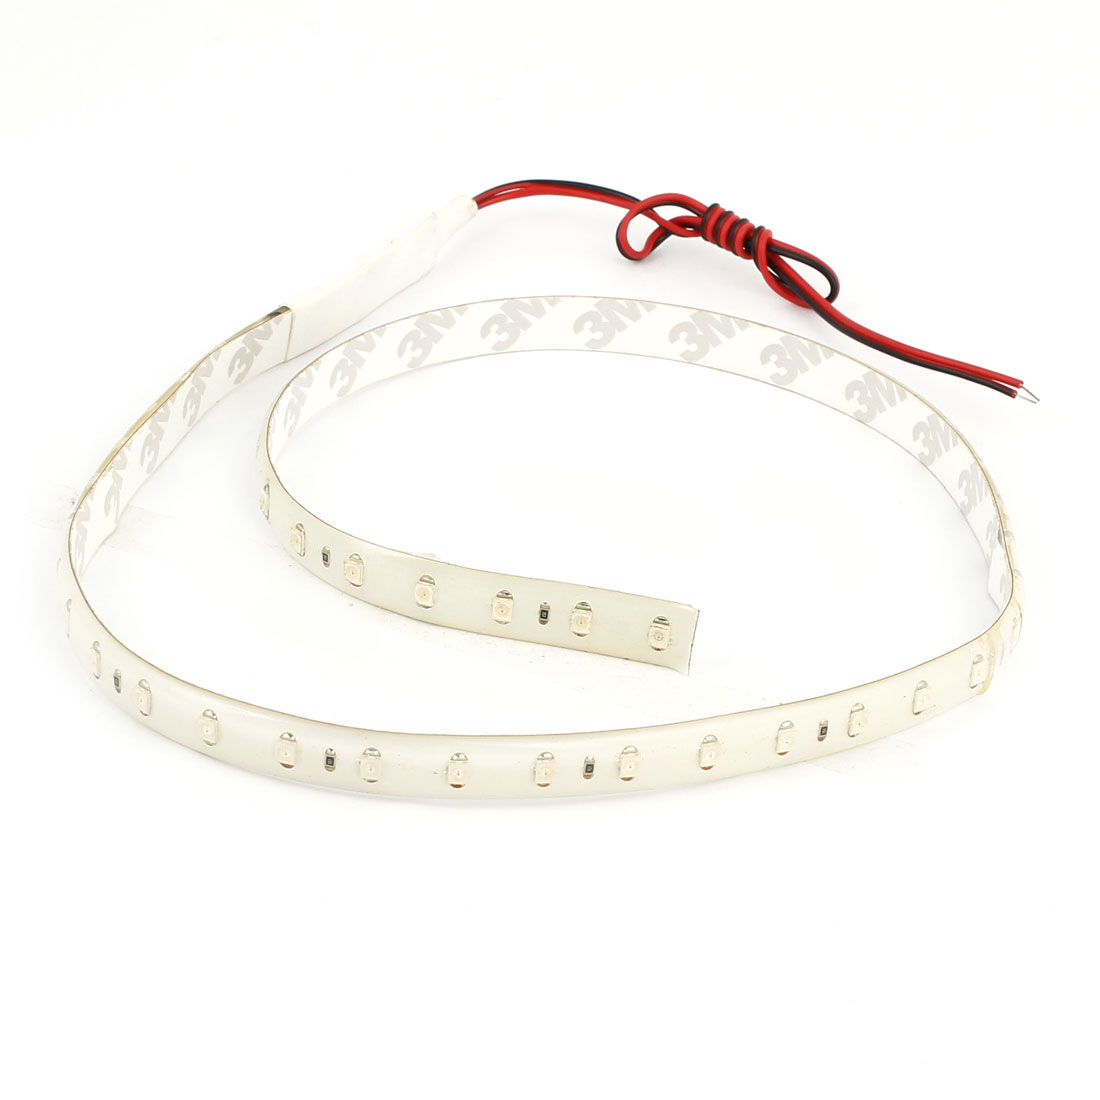 Car 48 1210 SMD Red LED Flexible Strip Bar Light Lamp Decor 60cm DC 12V Internal